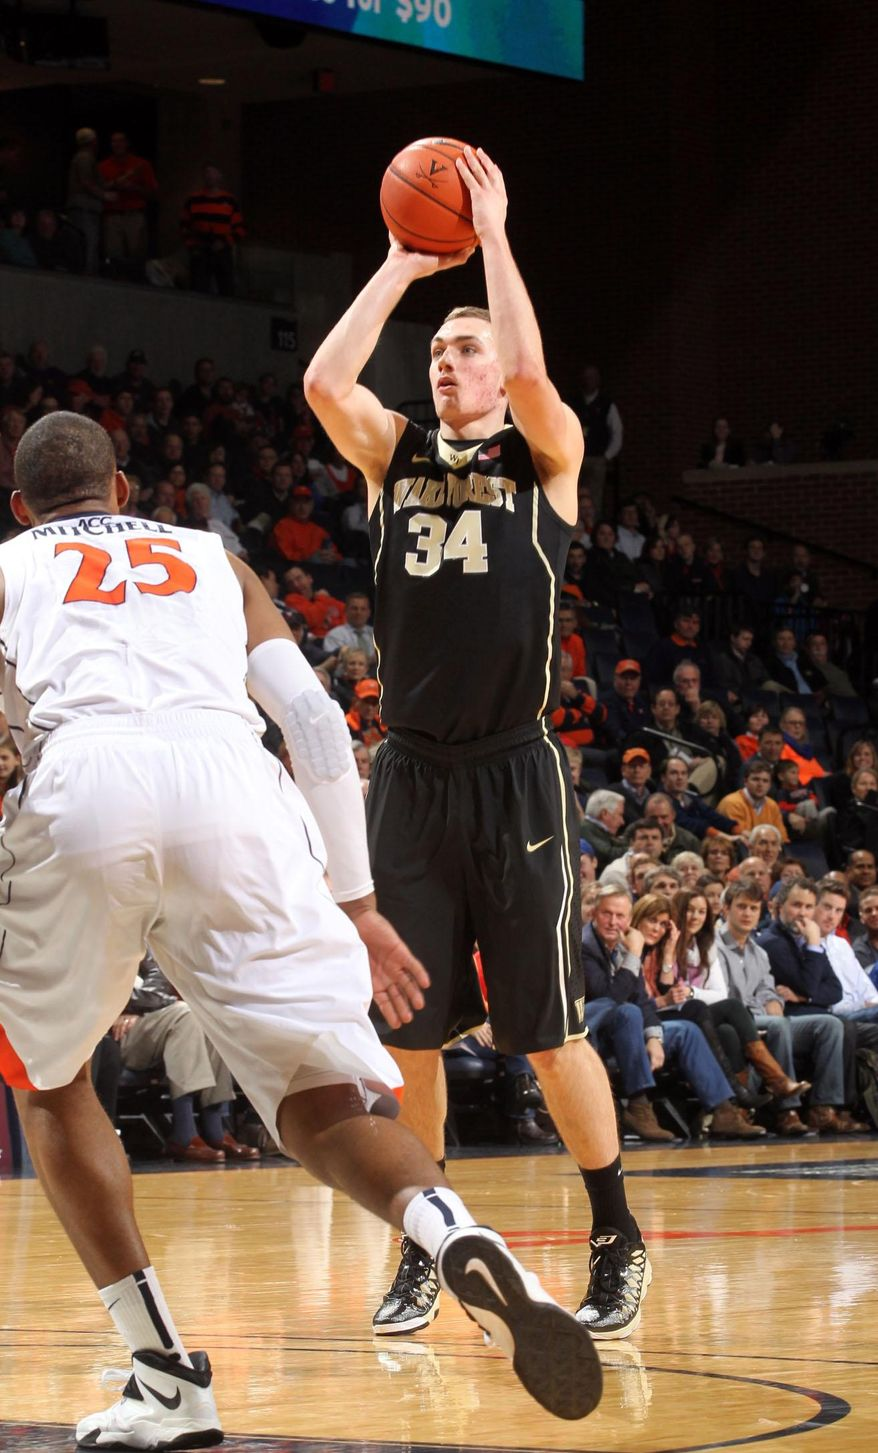 Wake Forest forward Tyler Cavanaugh (34) shoots over Virginia forward Akil Mitchell (25) during the first half of an NCAA college basketball game Wednesday, Jan. 8, 2014, in Charlottesville, Va. (AP Photo/Andrew Shurtleff)